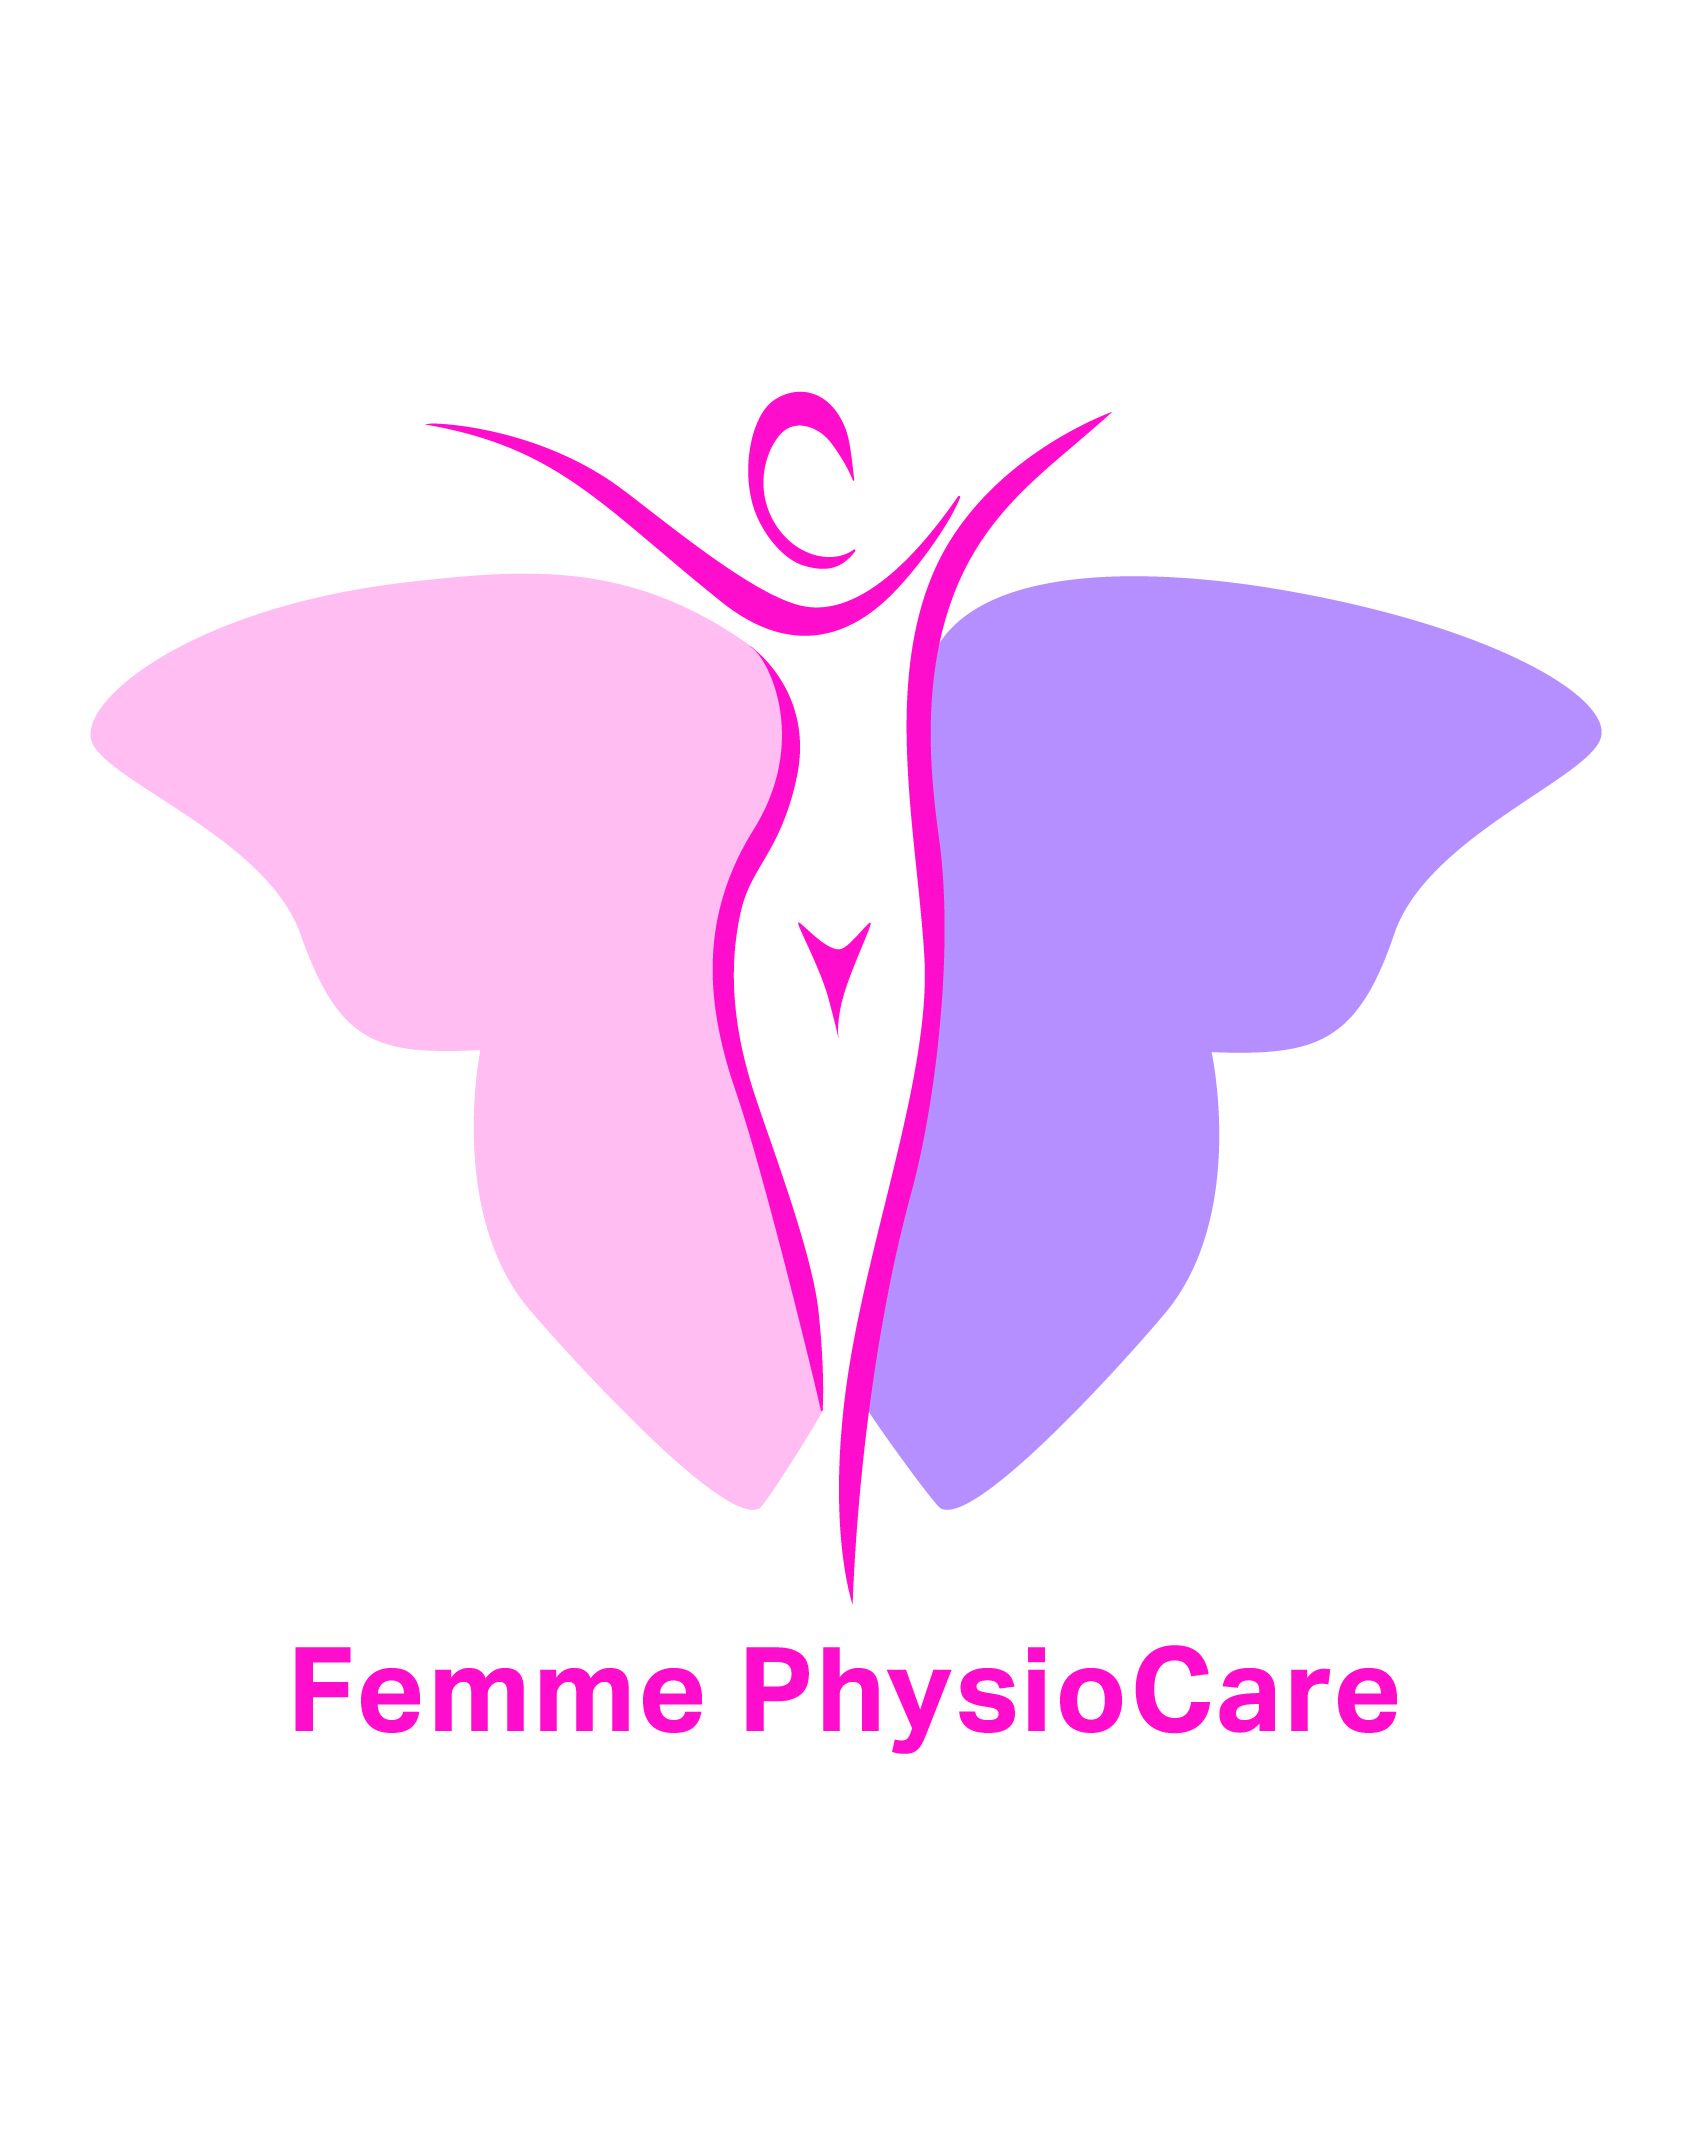 femme physiocare